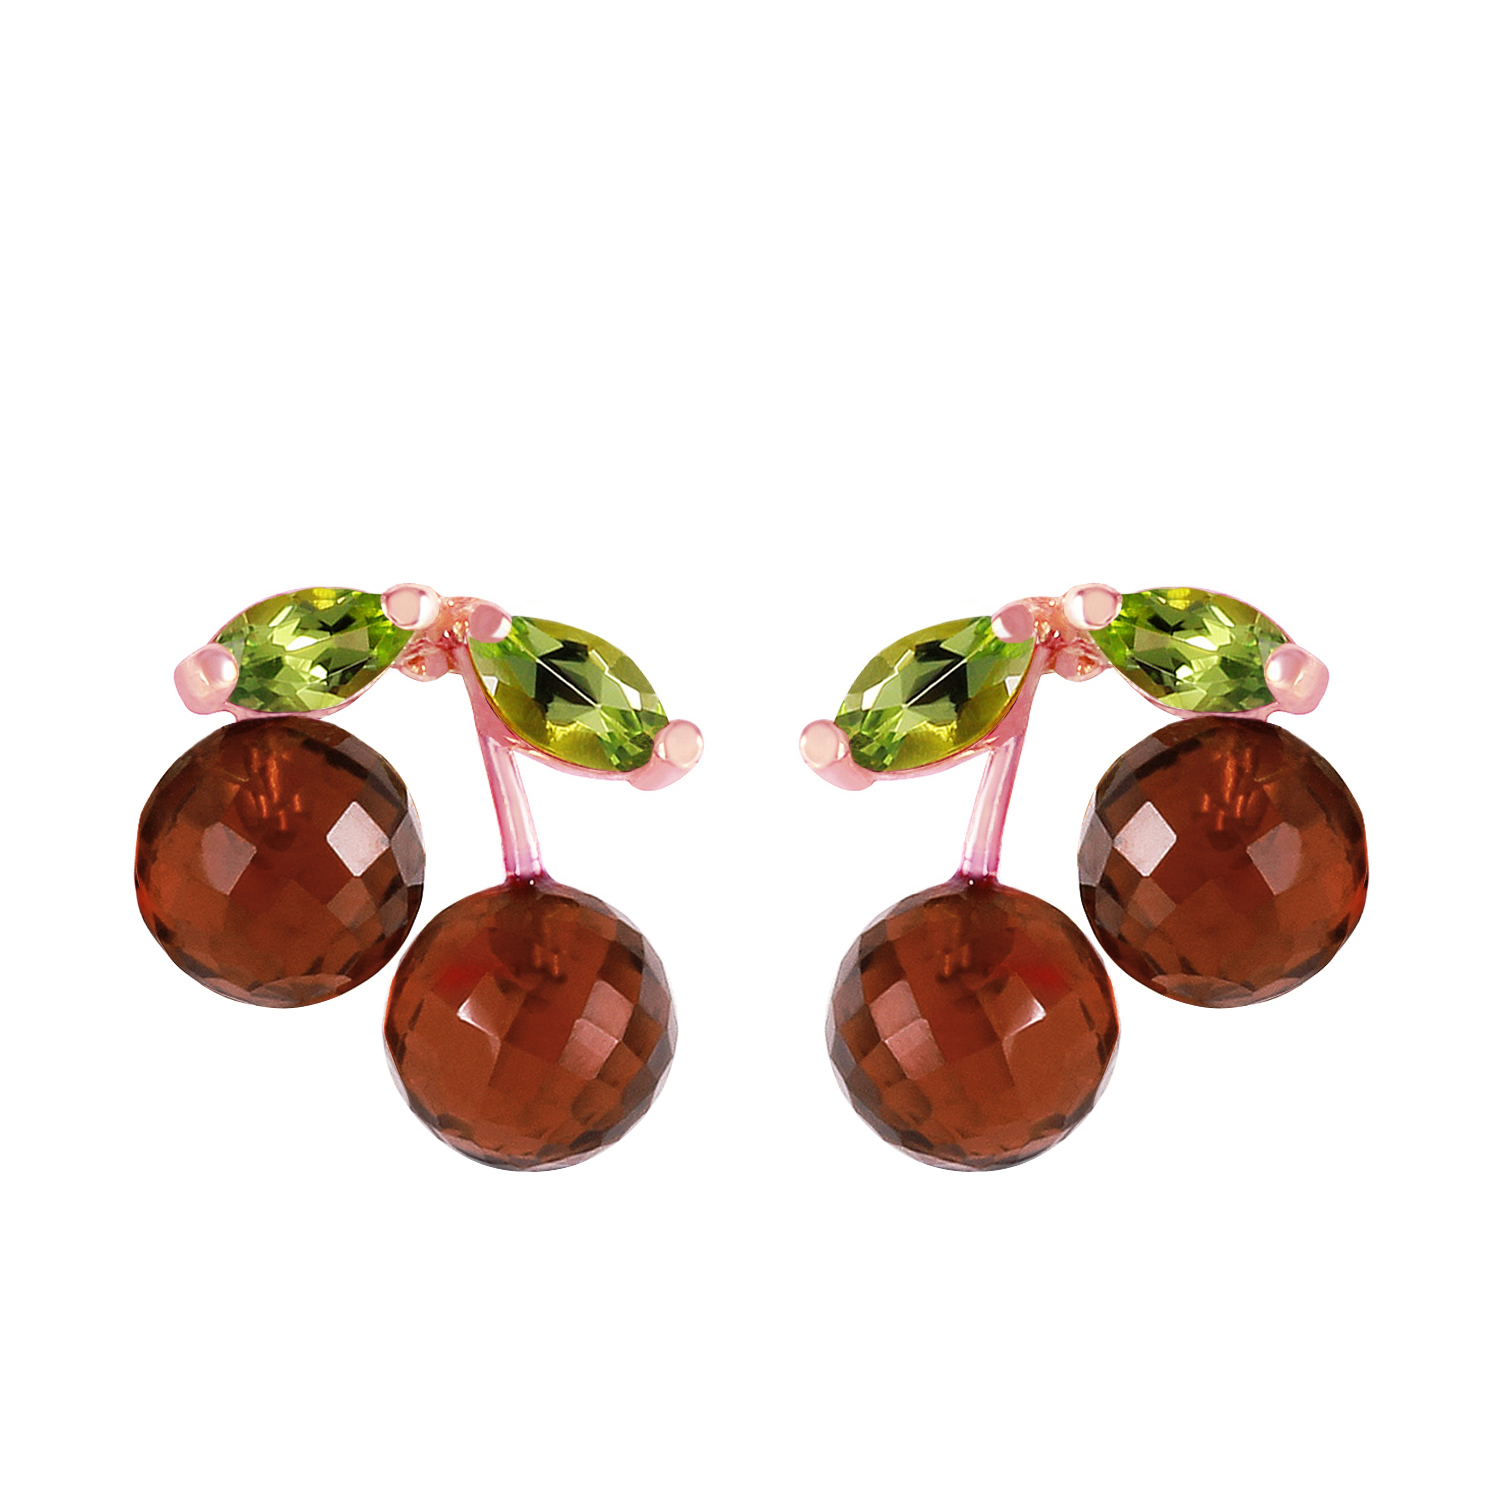 Primary image for 14K Solid Rose Gold Women's Beautiful Fashion Earrings with Garnets & Peridots